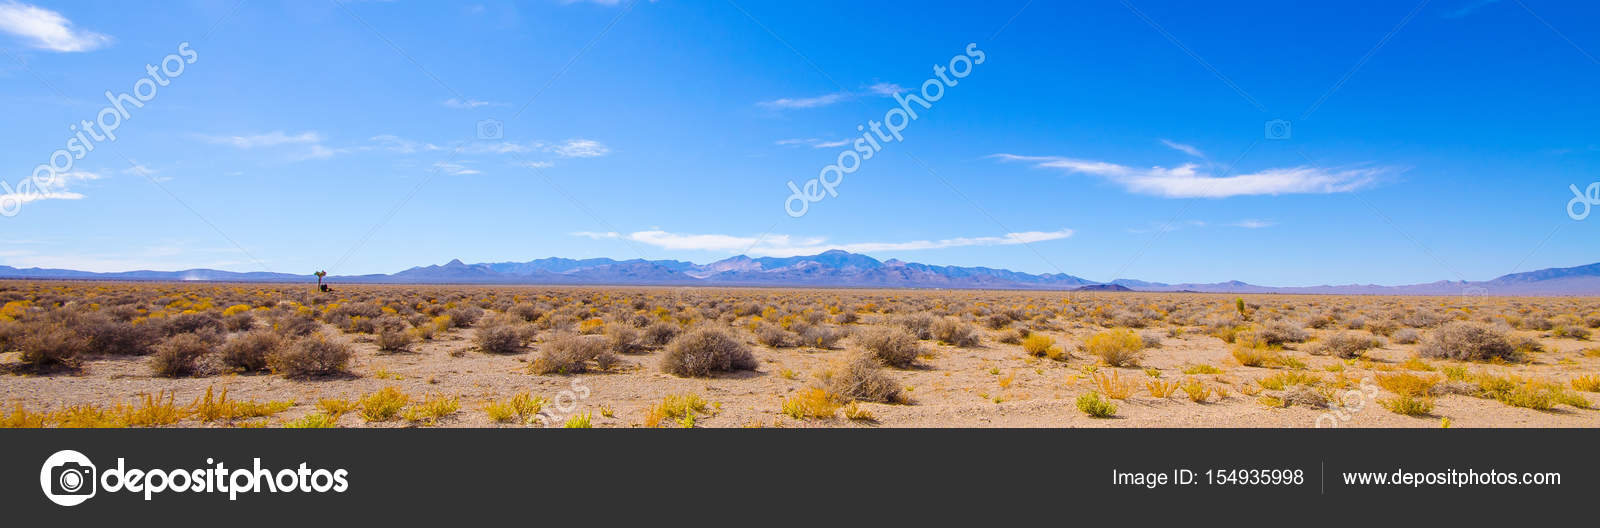 Desert panorama near Area 51 — Stock Photo © tristanbnz #154935998